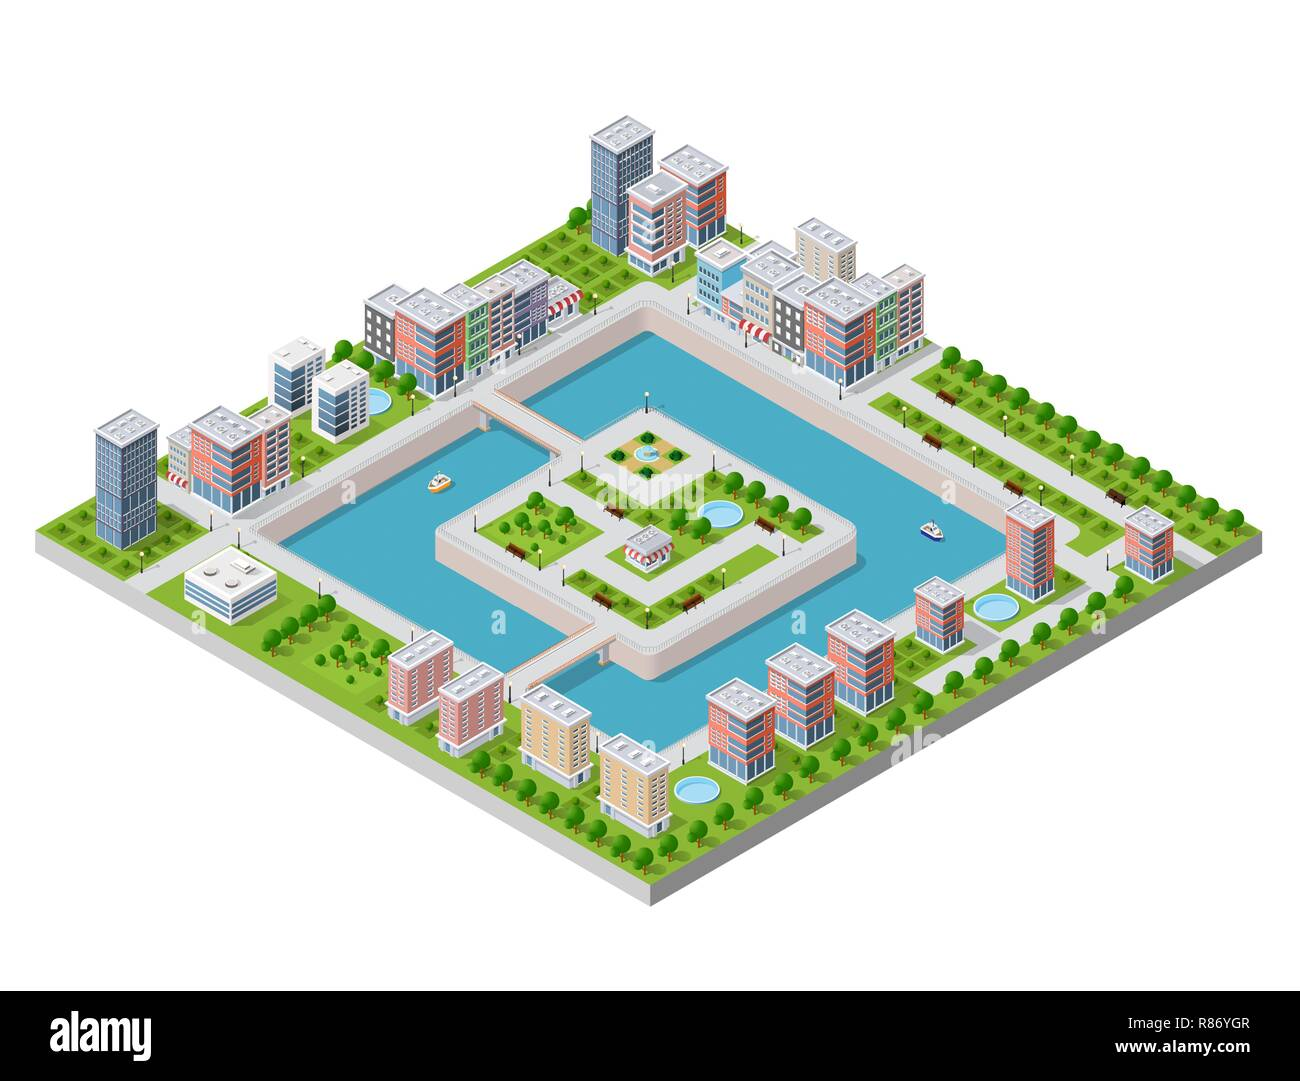 Isometric vector illustration of a modern city with a marina and river embankment. Dimensions of skyscrapers, houses, buildings and urban areas parks  - Stock Vector